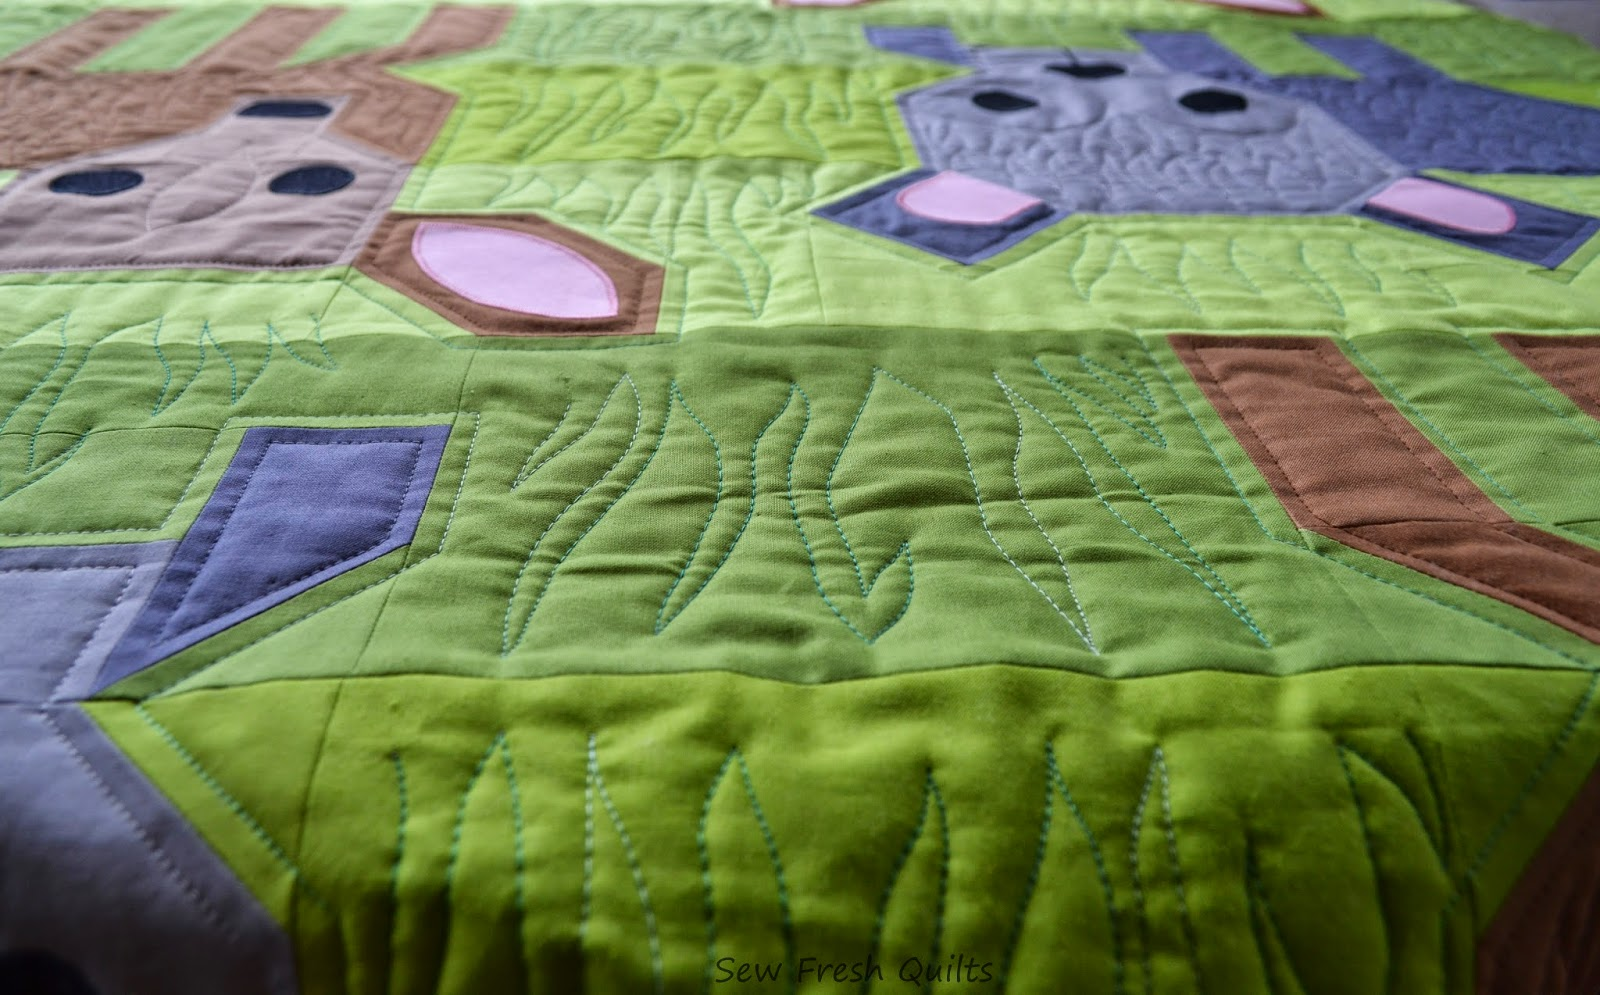 http://sewfreshquilts.blogspot.ca/2014/10/wild-life-finished-top